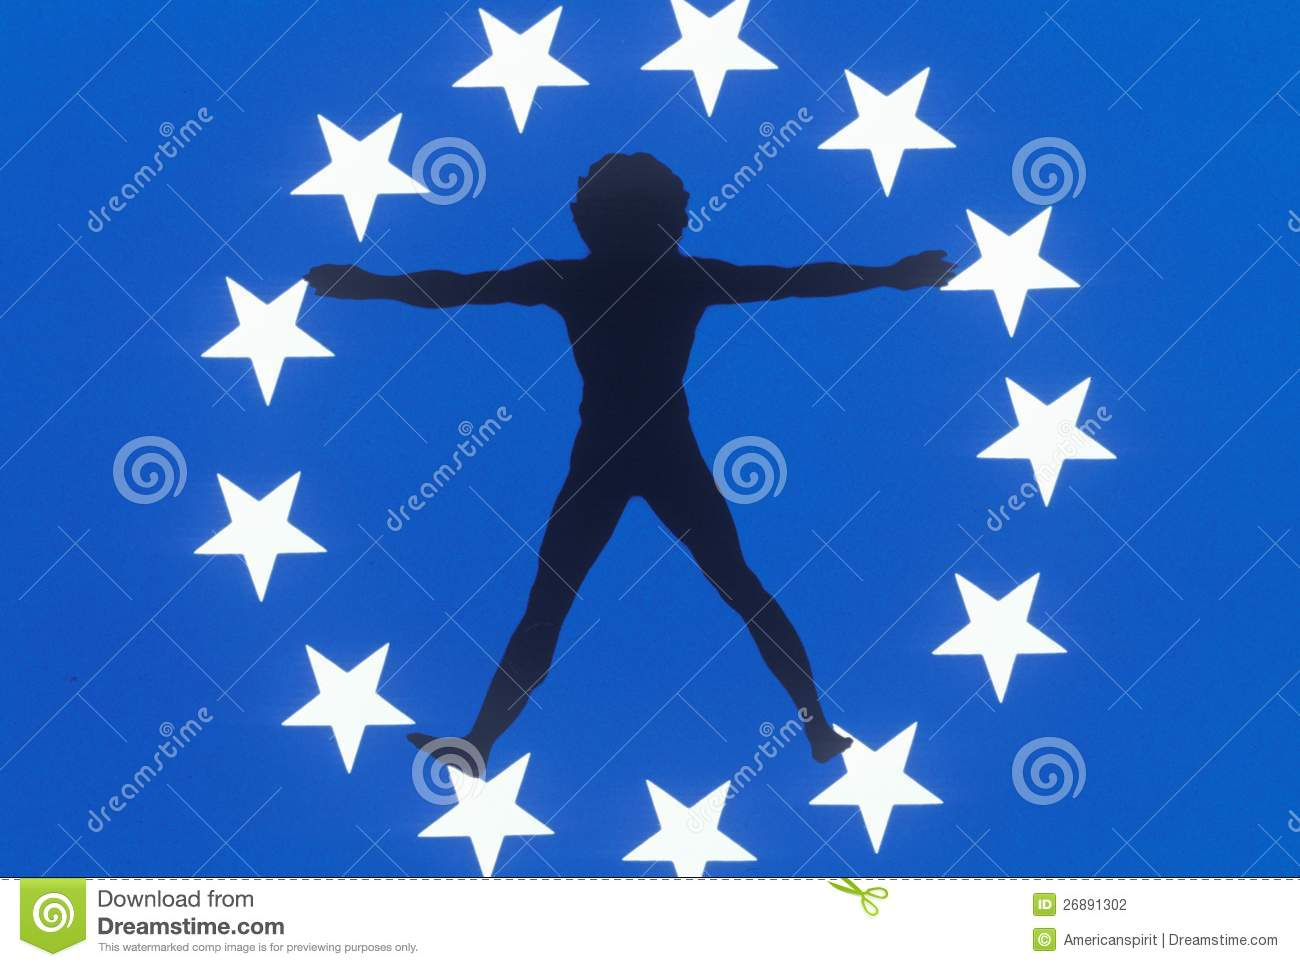 Silhouette of Man in Circle of Stars